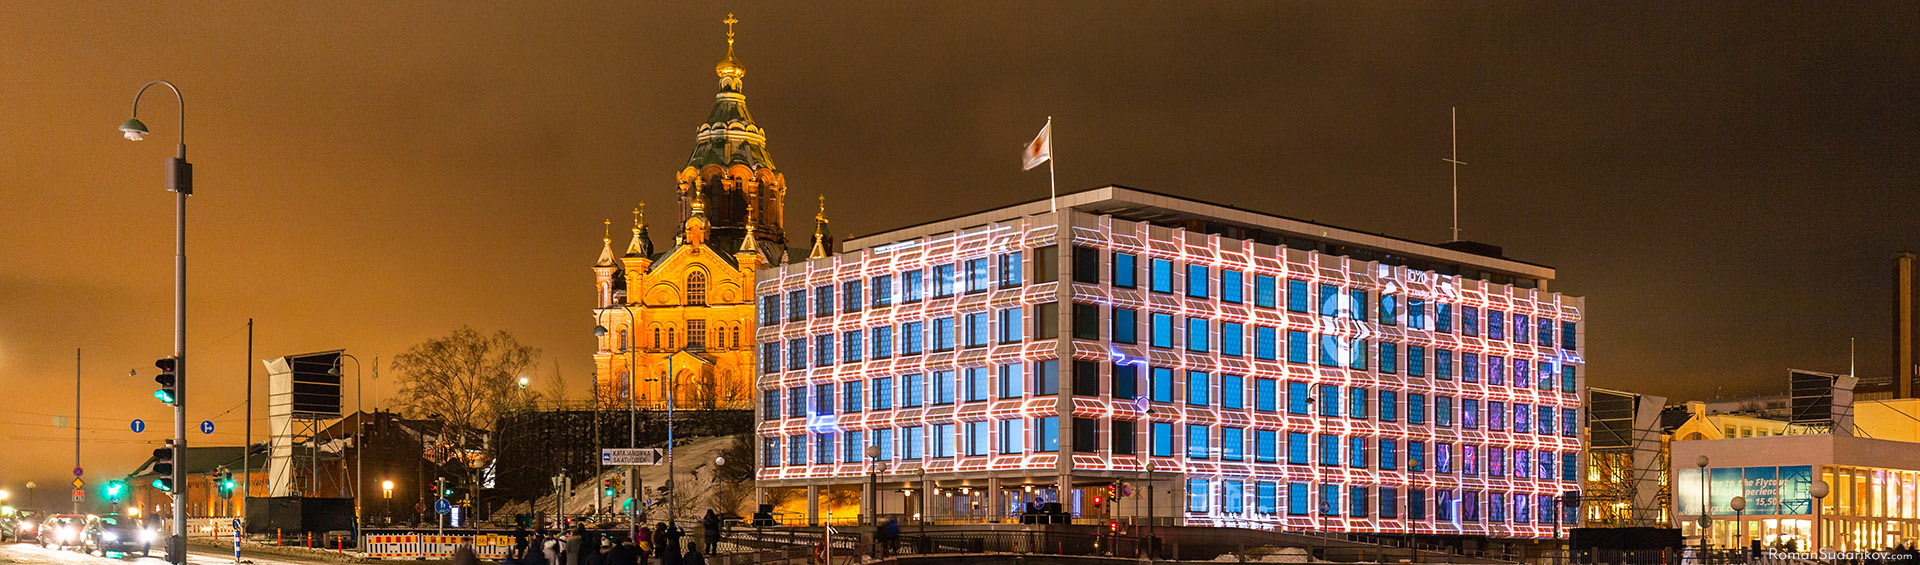 Light nstallation Cube by a three-person production team Shader, which consists of Pekka Tavi, Mikko Kunnari and Timo Yliräisänen. The animation is projected on the head office of Stora Enso from the side of the Market Square. Lux Helsinki 2017 Light Festival.